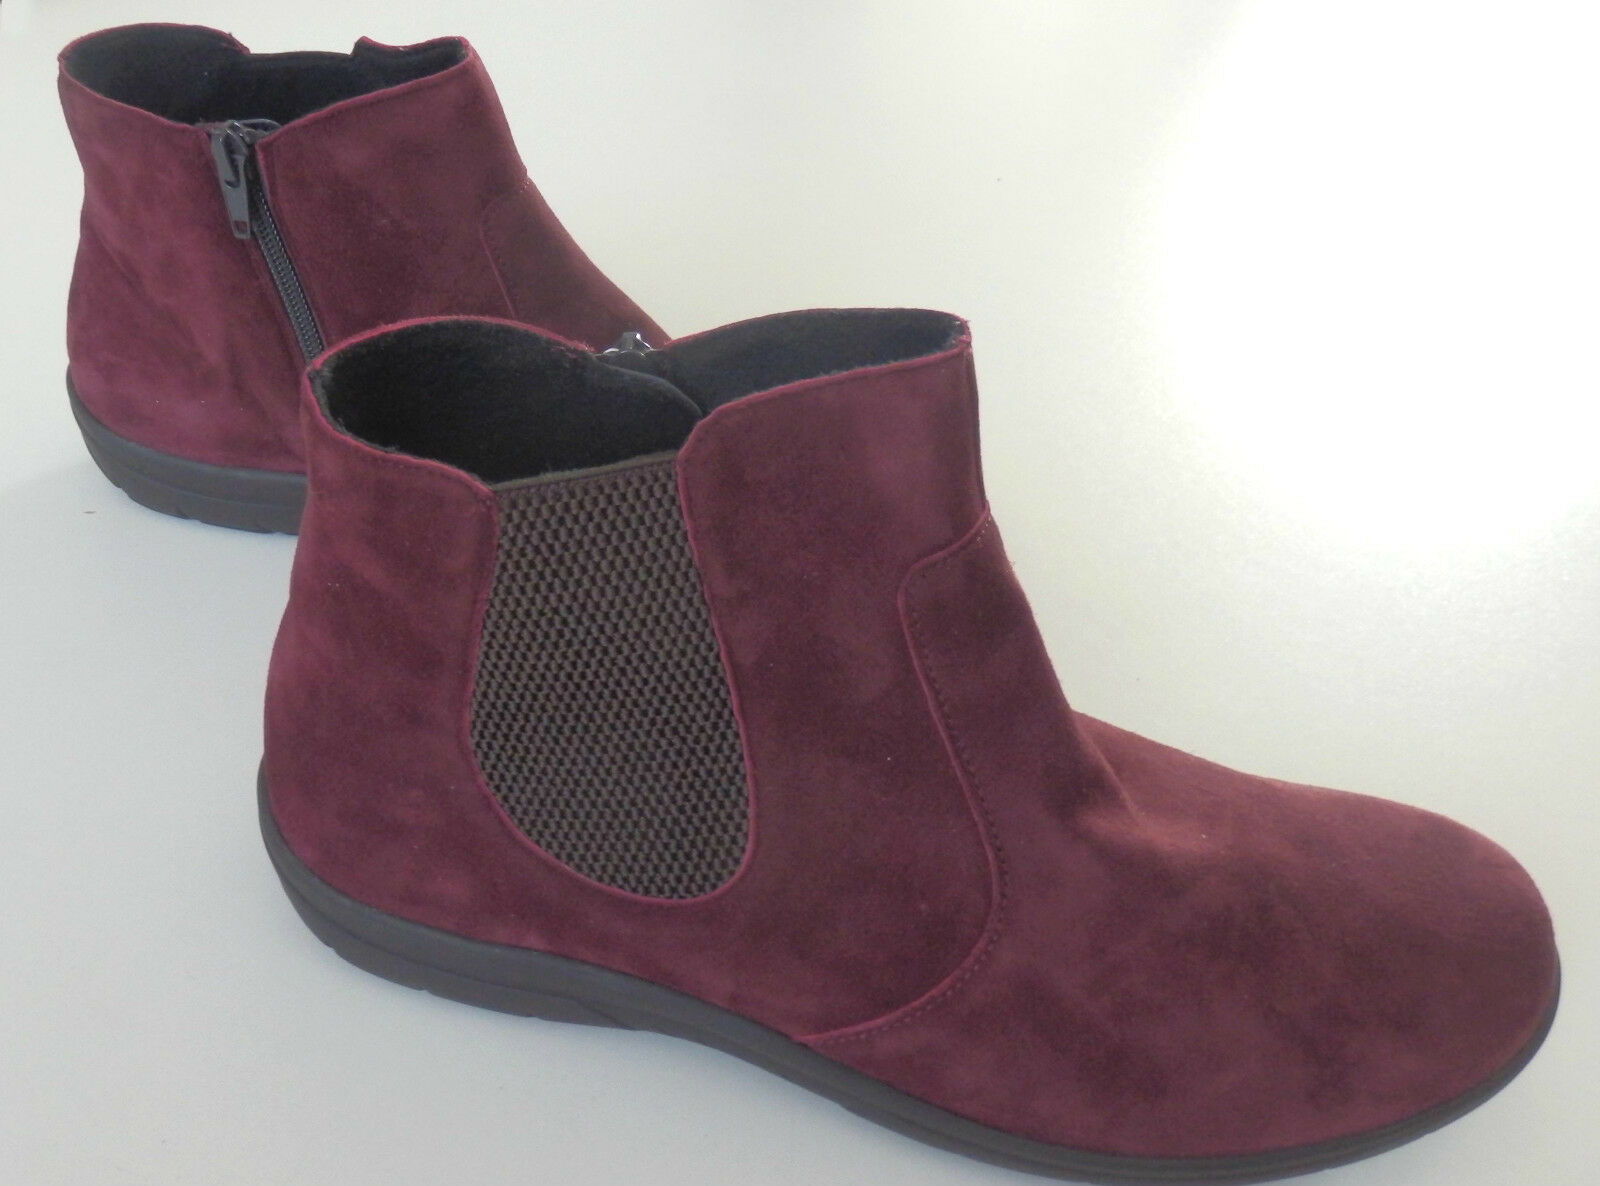 Chelsea Boot Stiefelette Semler Weite H 33, 34, 34,5 35,5 36,5, 37, 45